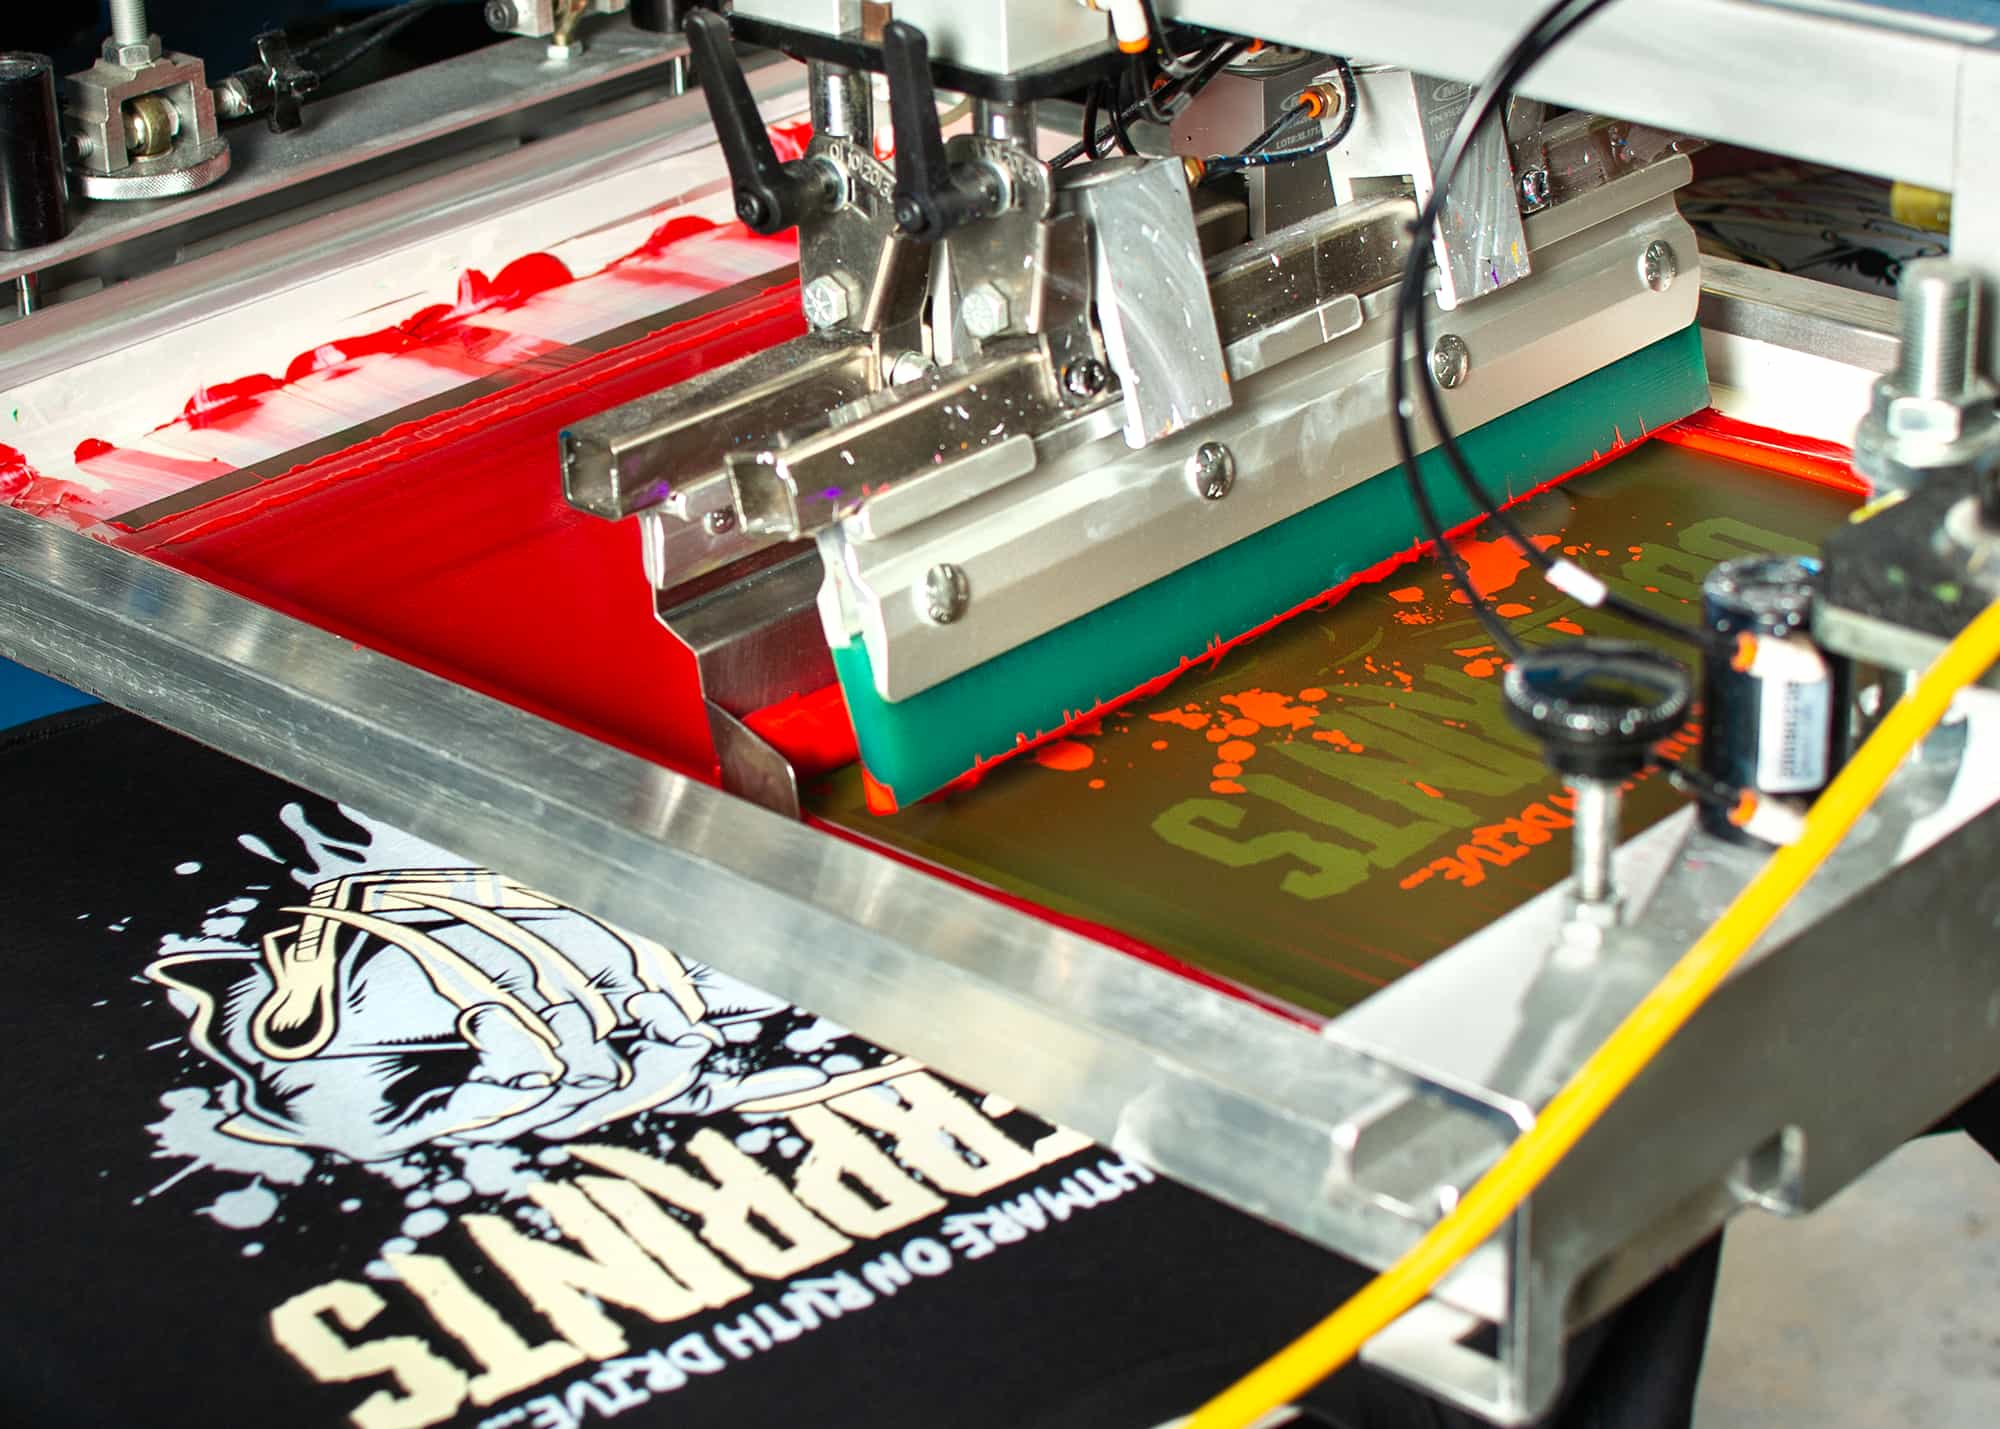 Printing the third color of the UberPrints 2019 Halloween design.